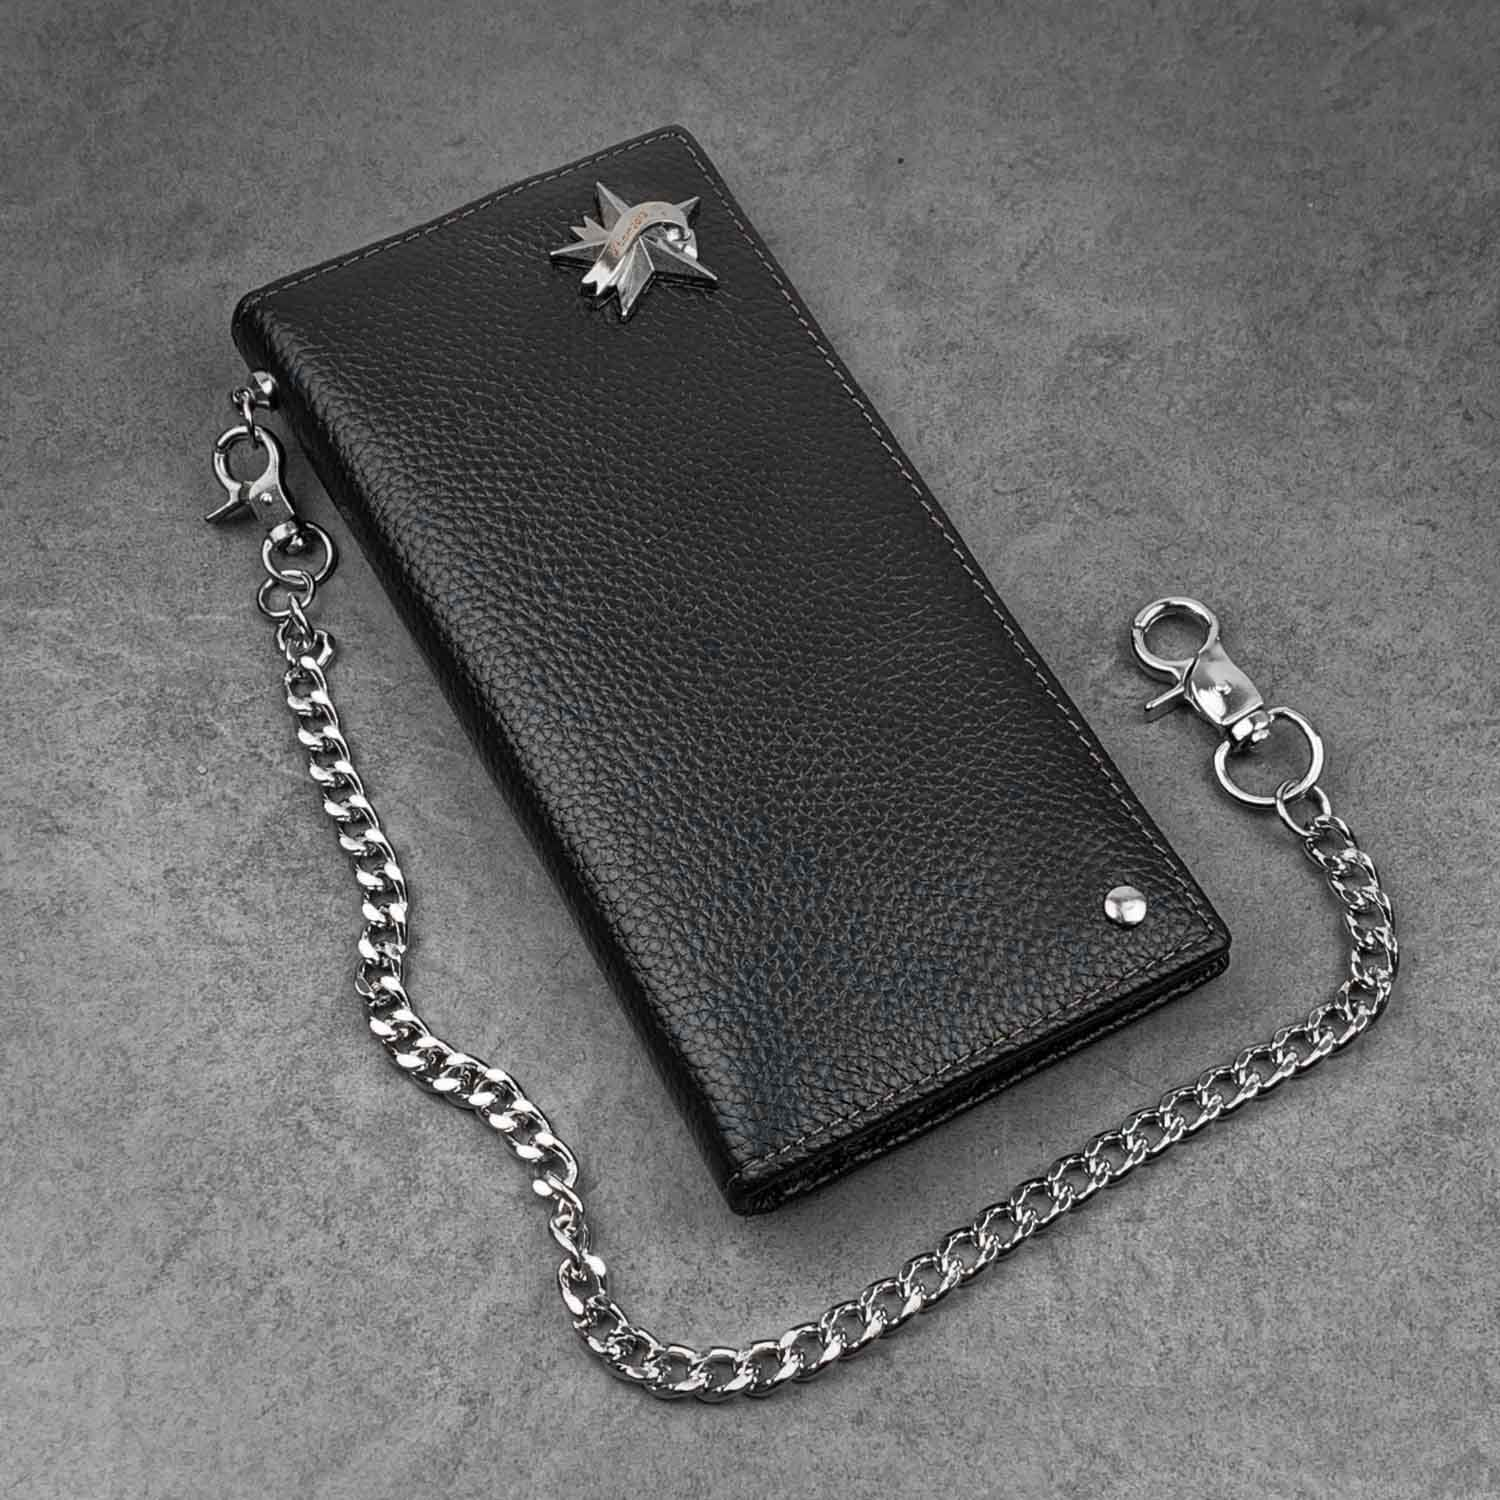 Black Casual Leather Mens Long Wallet Bifold Biker Chain Wallet Biker